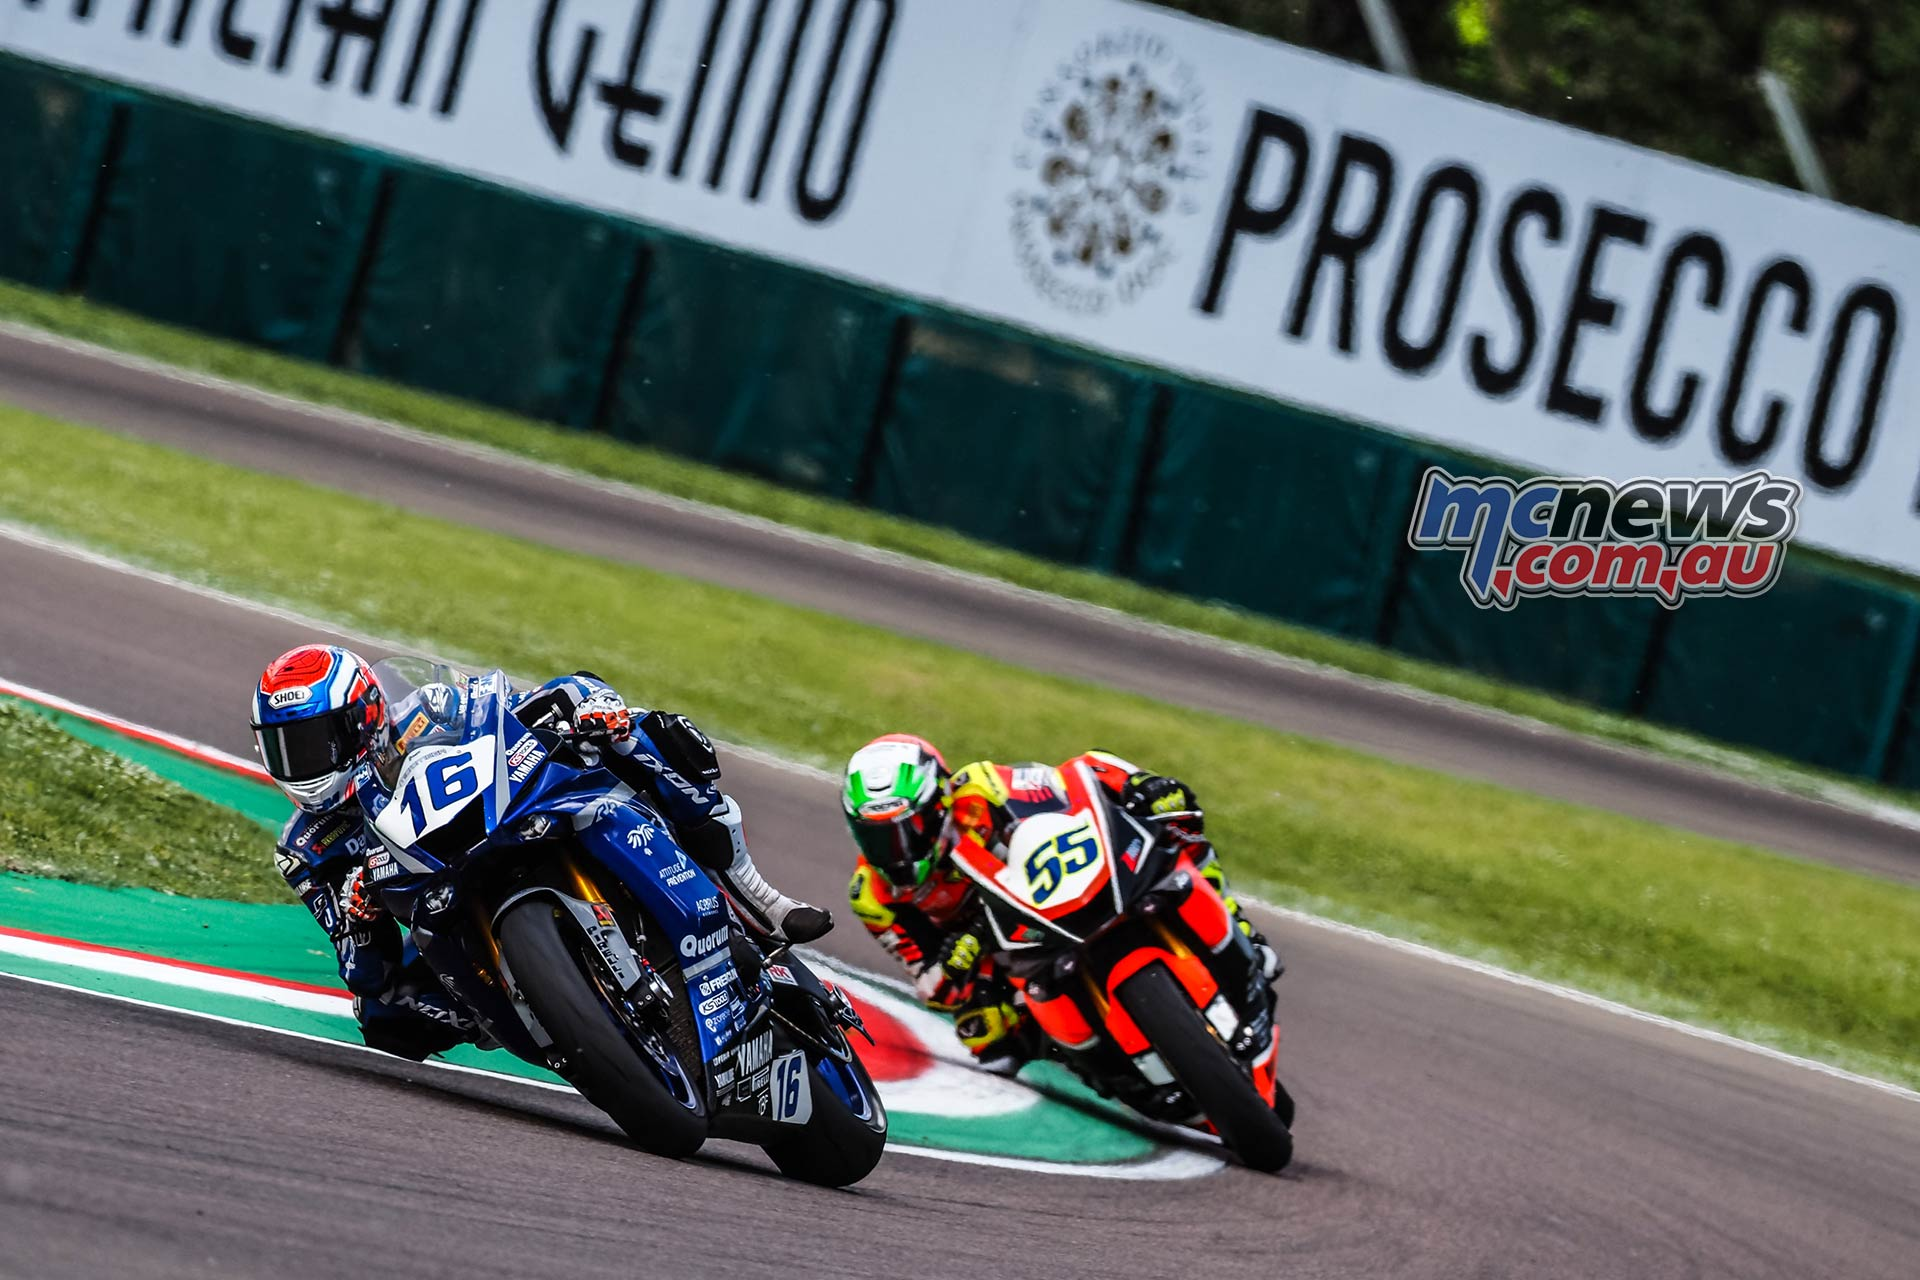 WSBK Rnd Imola Friday WorldSSP Friday Action Cluzel